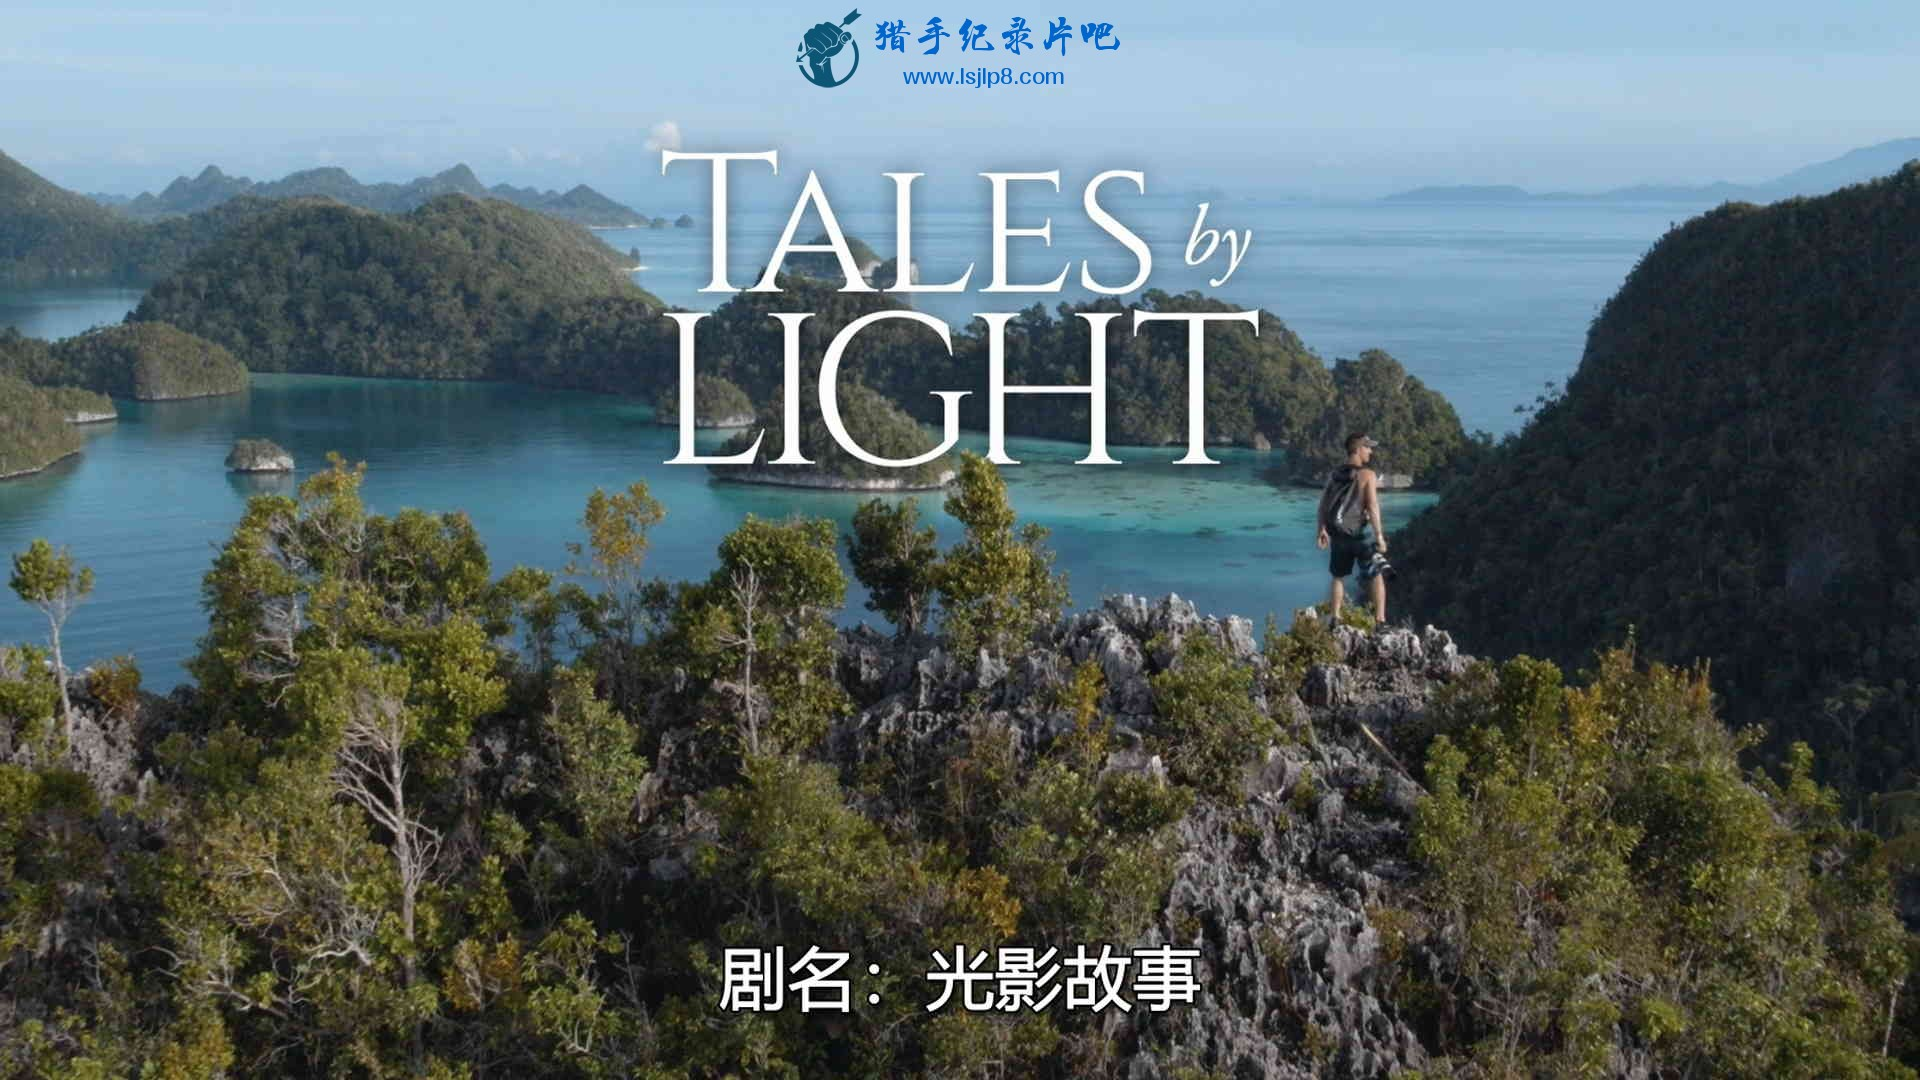 Tales.by.Light.S03E01.Children.In.Need.Part.1.1080p.NF.WEB-DL.DDP5.1.x264-NTb.mk.jpg